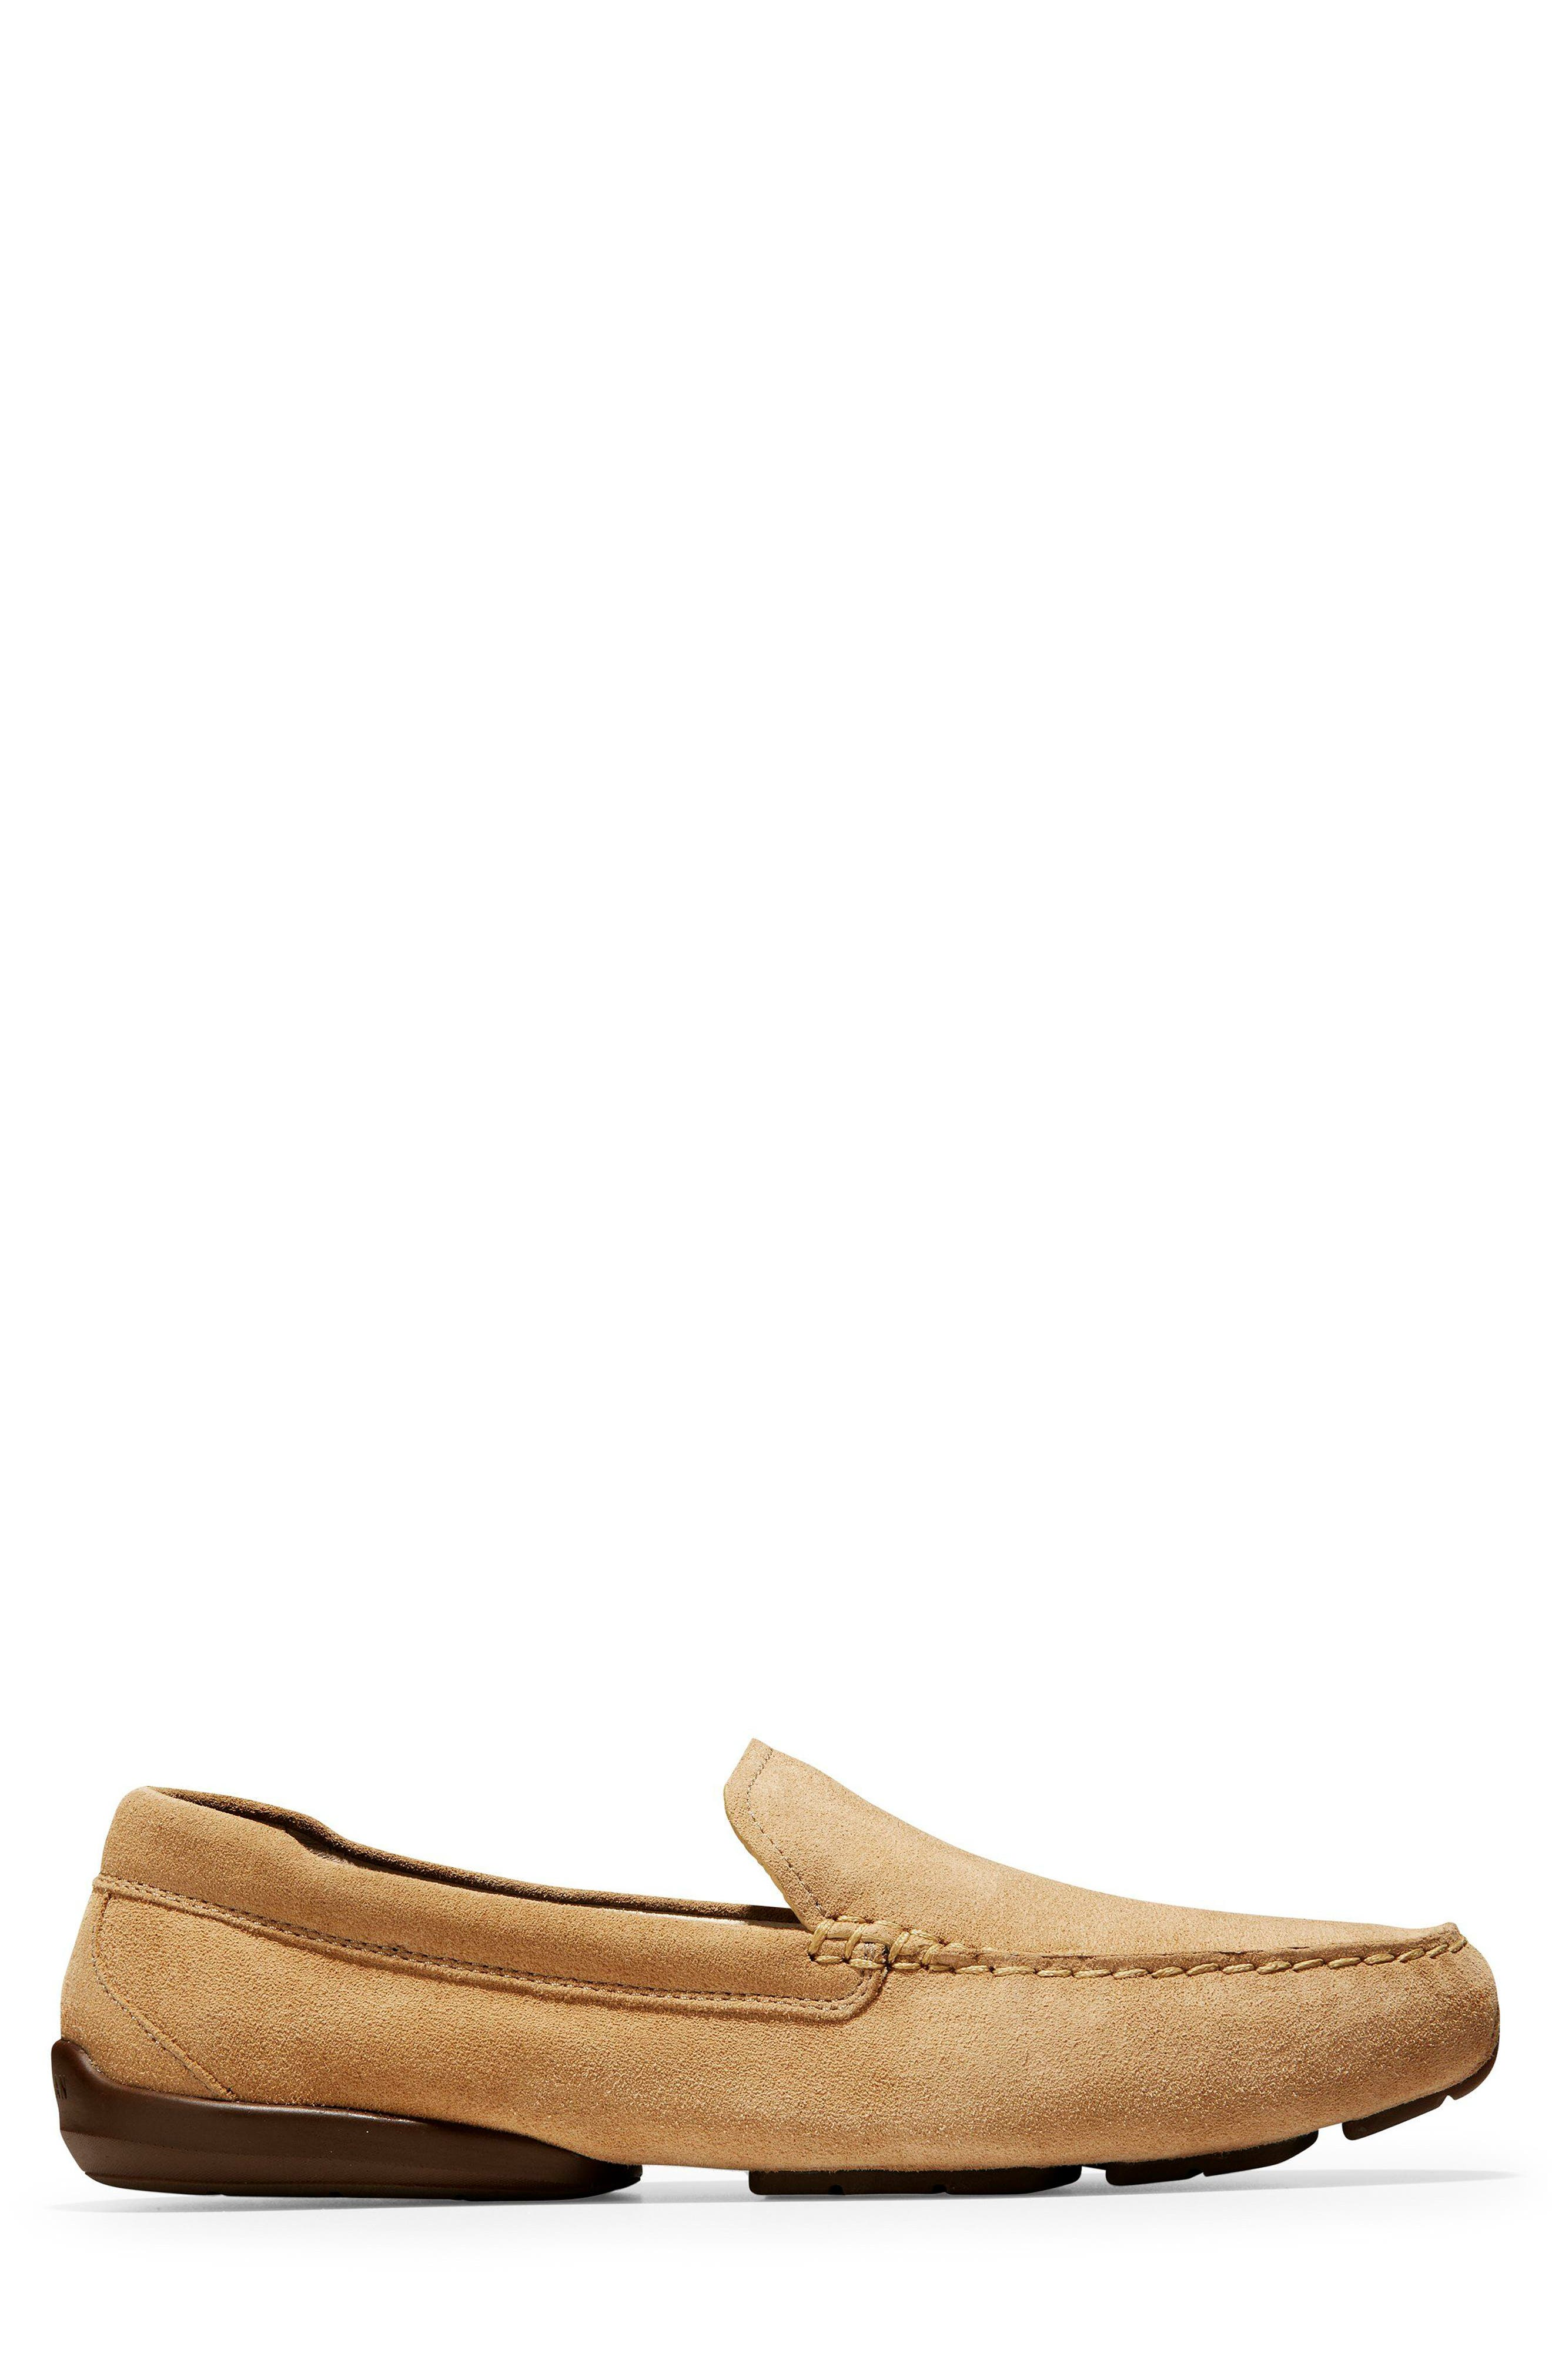 Branson Driving Shoe,                             Alternate thumbnail 3, color,                             Iced Coffee Suede